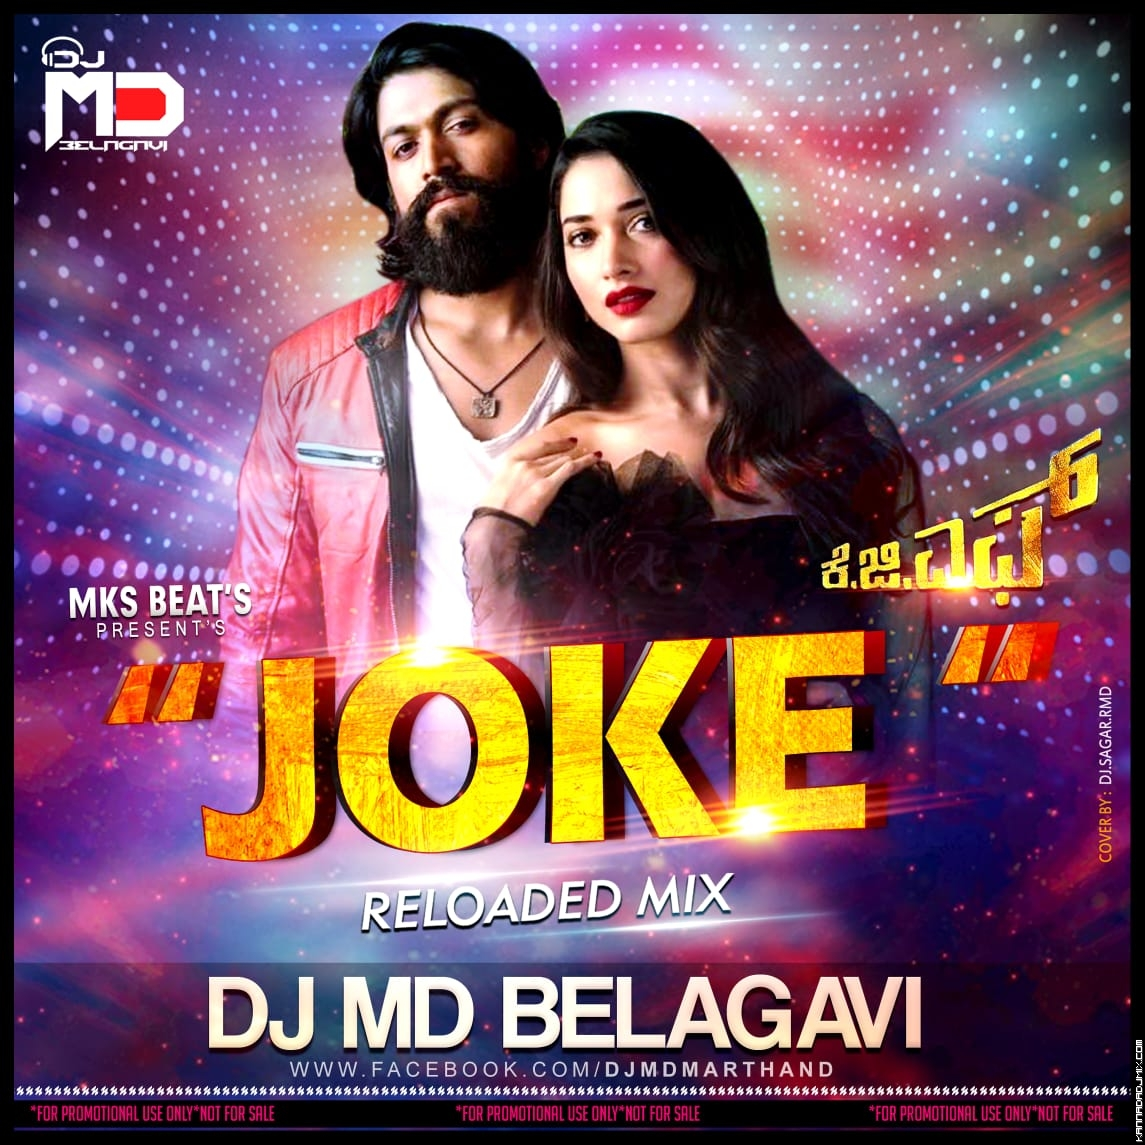 JOKE EDM RELOADED REMIX   [DJ MD BELAGAVI  FT MKS  BEATS].mp3